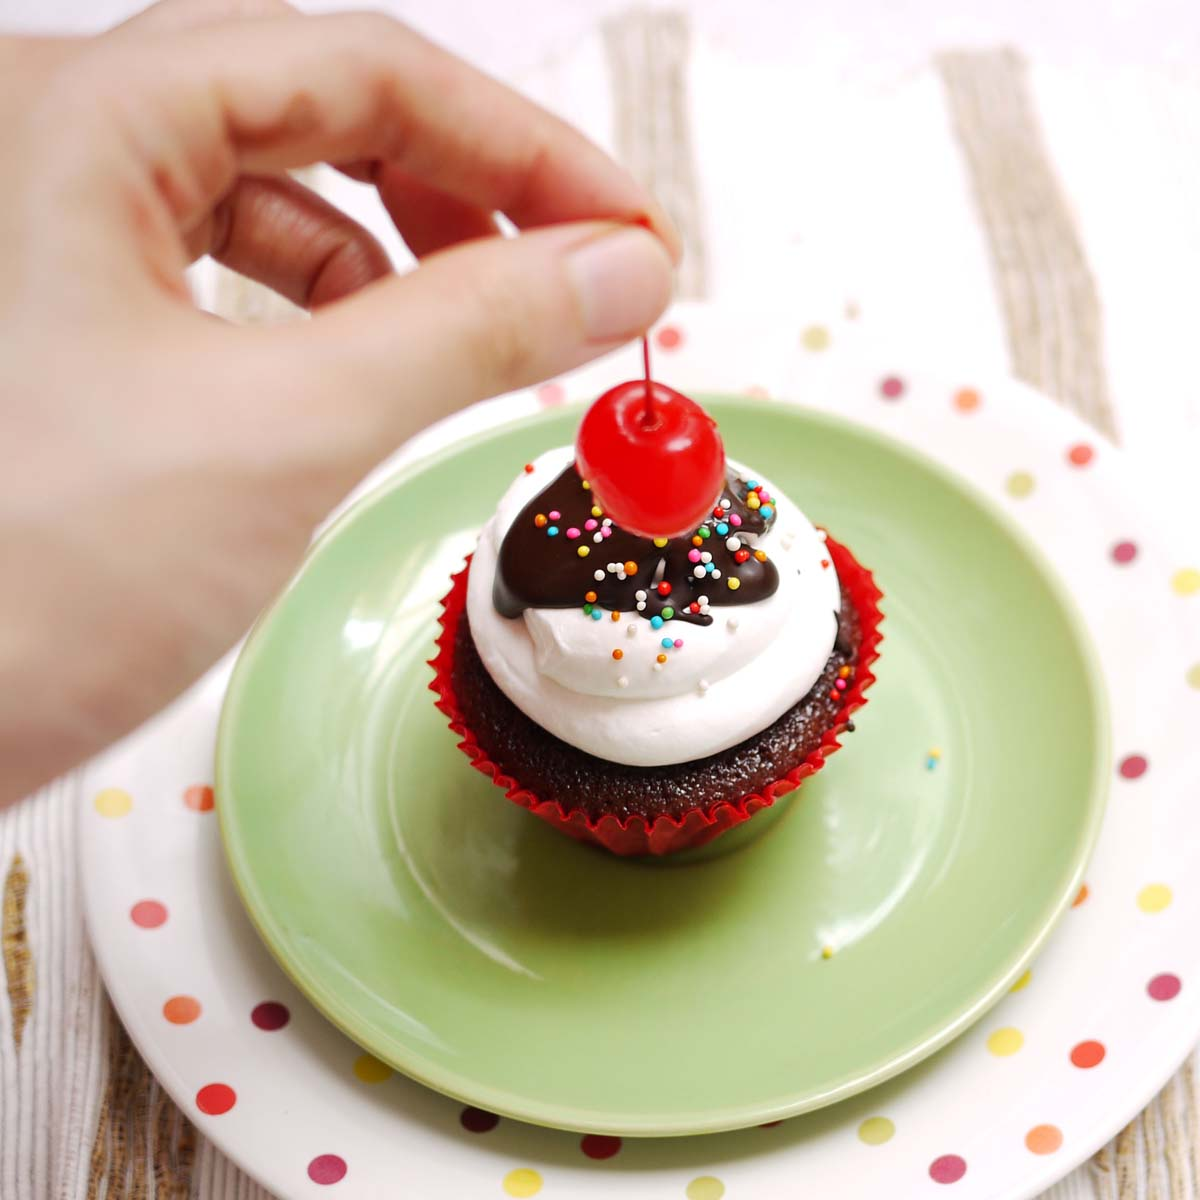 Cupcake Cake With Cherry On Top